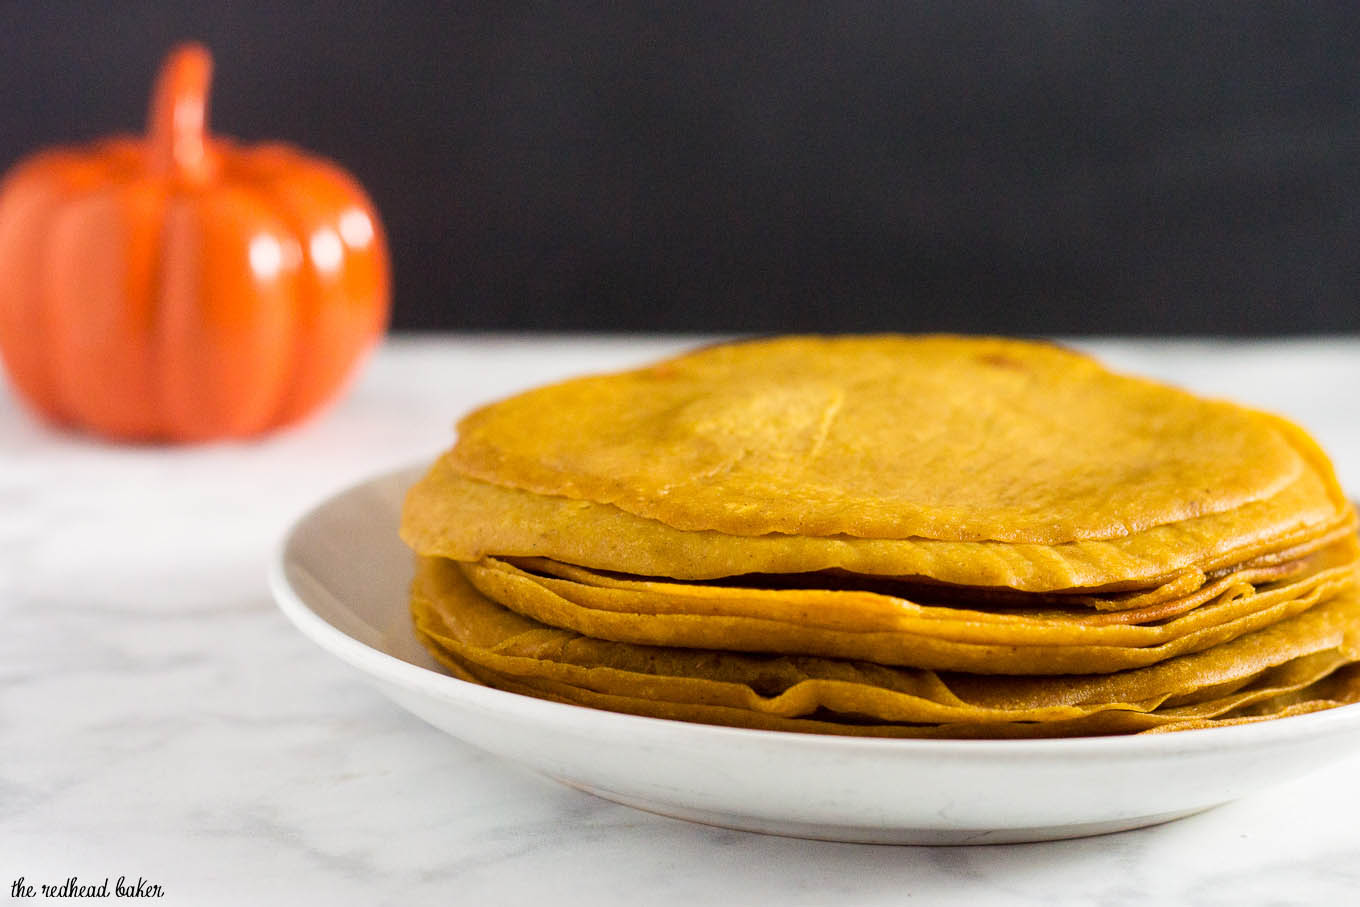 Pumpkin crepes are very thin dessert pancakes, folded over sweetened cream cheese filling and drizzled with dulce de leche. #PumpkinWeek